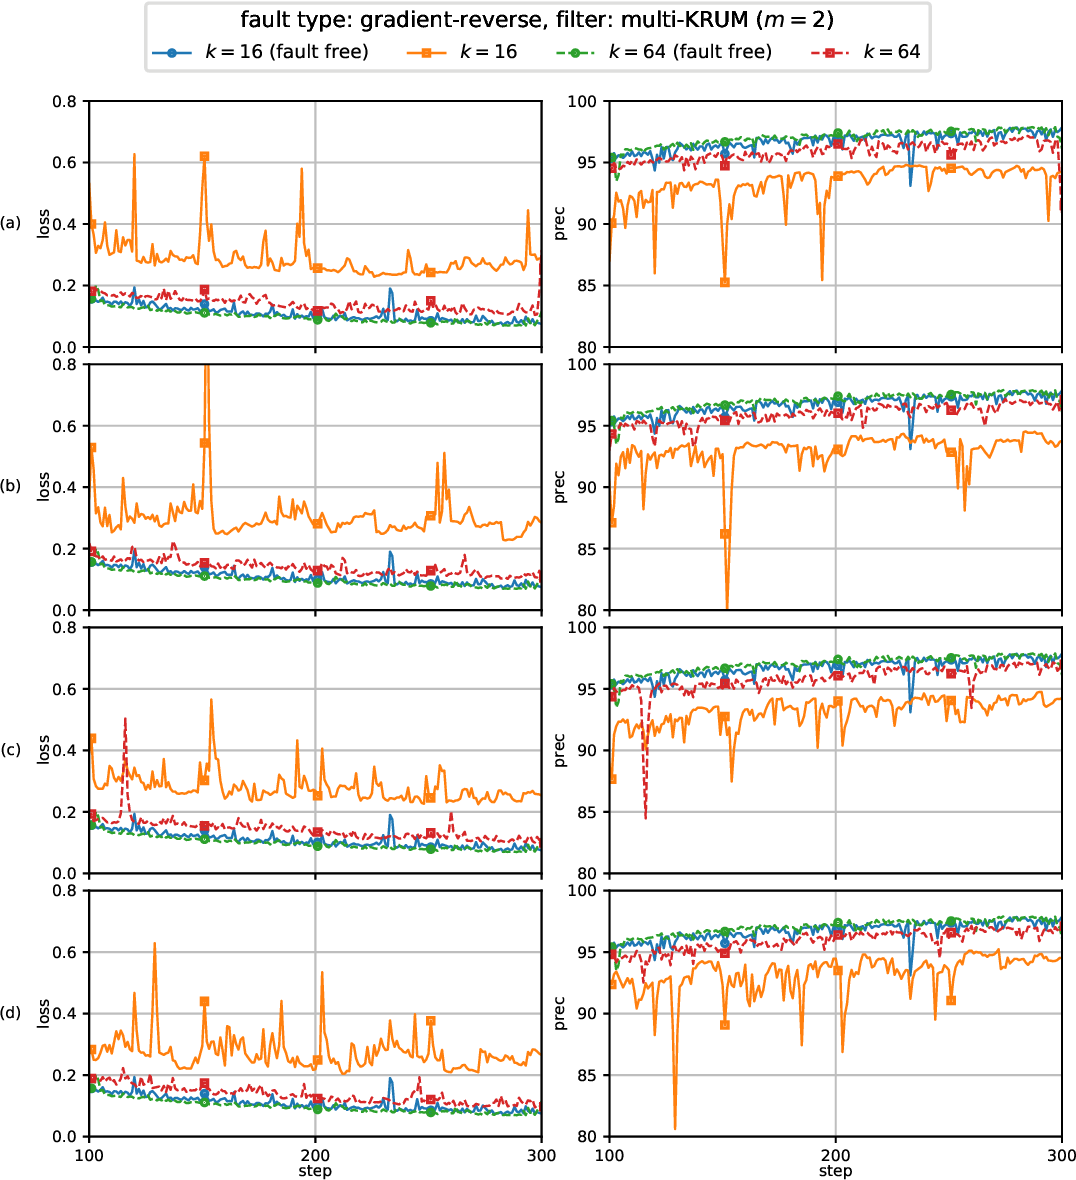 Figure 4 for Byzantine Fault-Tolerant Distributed Machine Learning Using Stochastic Gradient Descent (SGD) and Norm-Based Comparative Gradient Elimination (CGE)